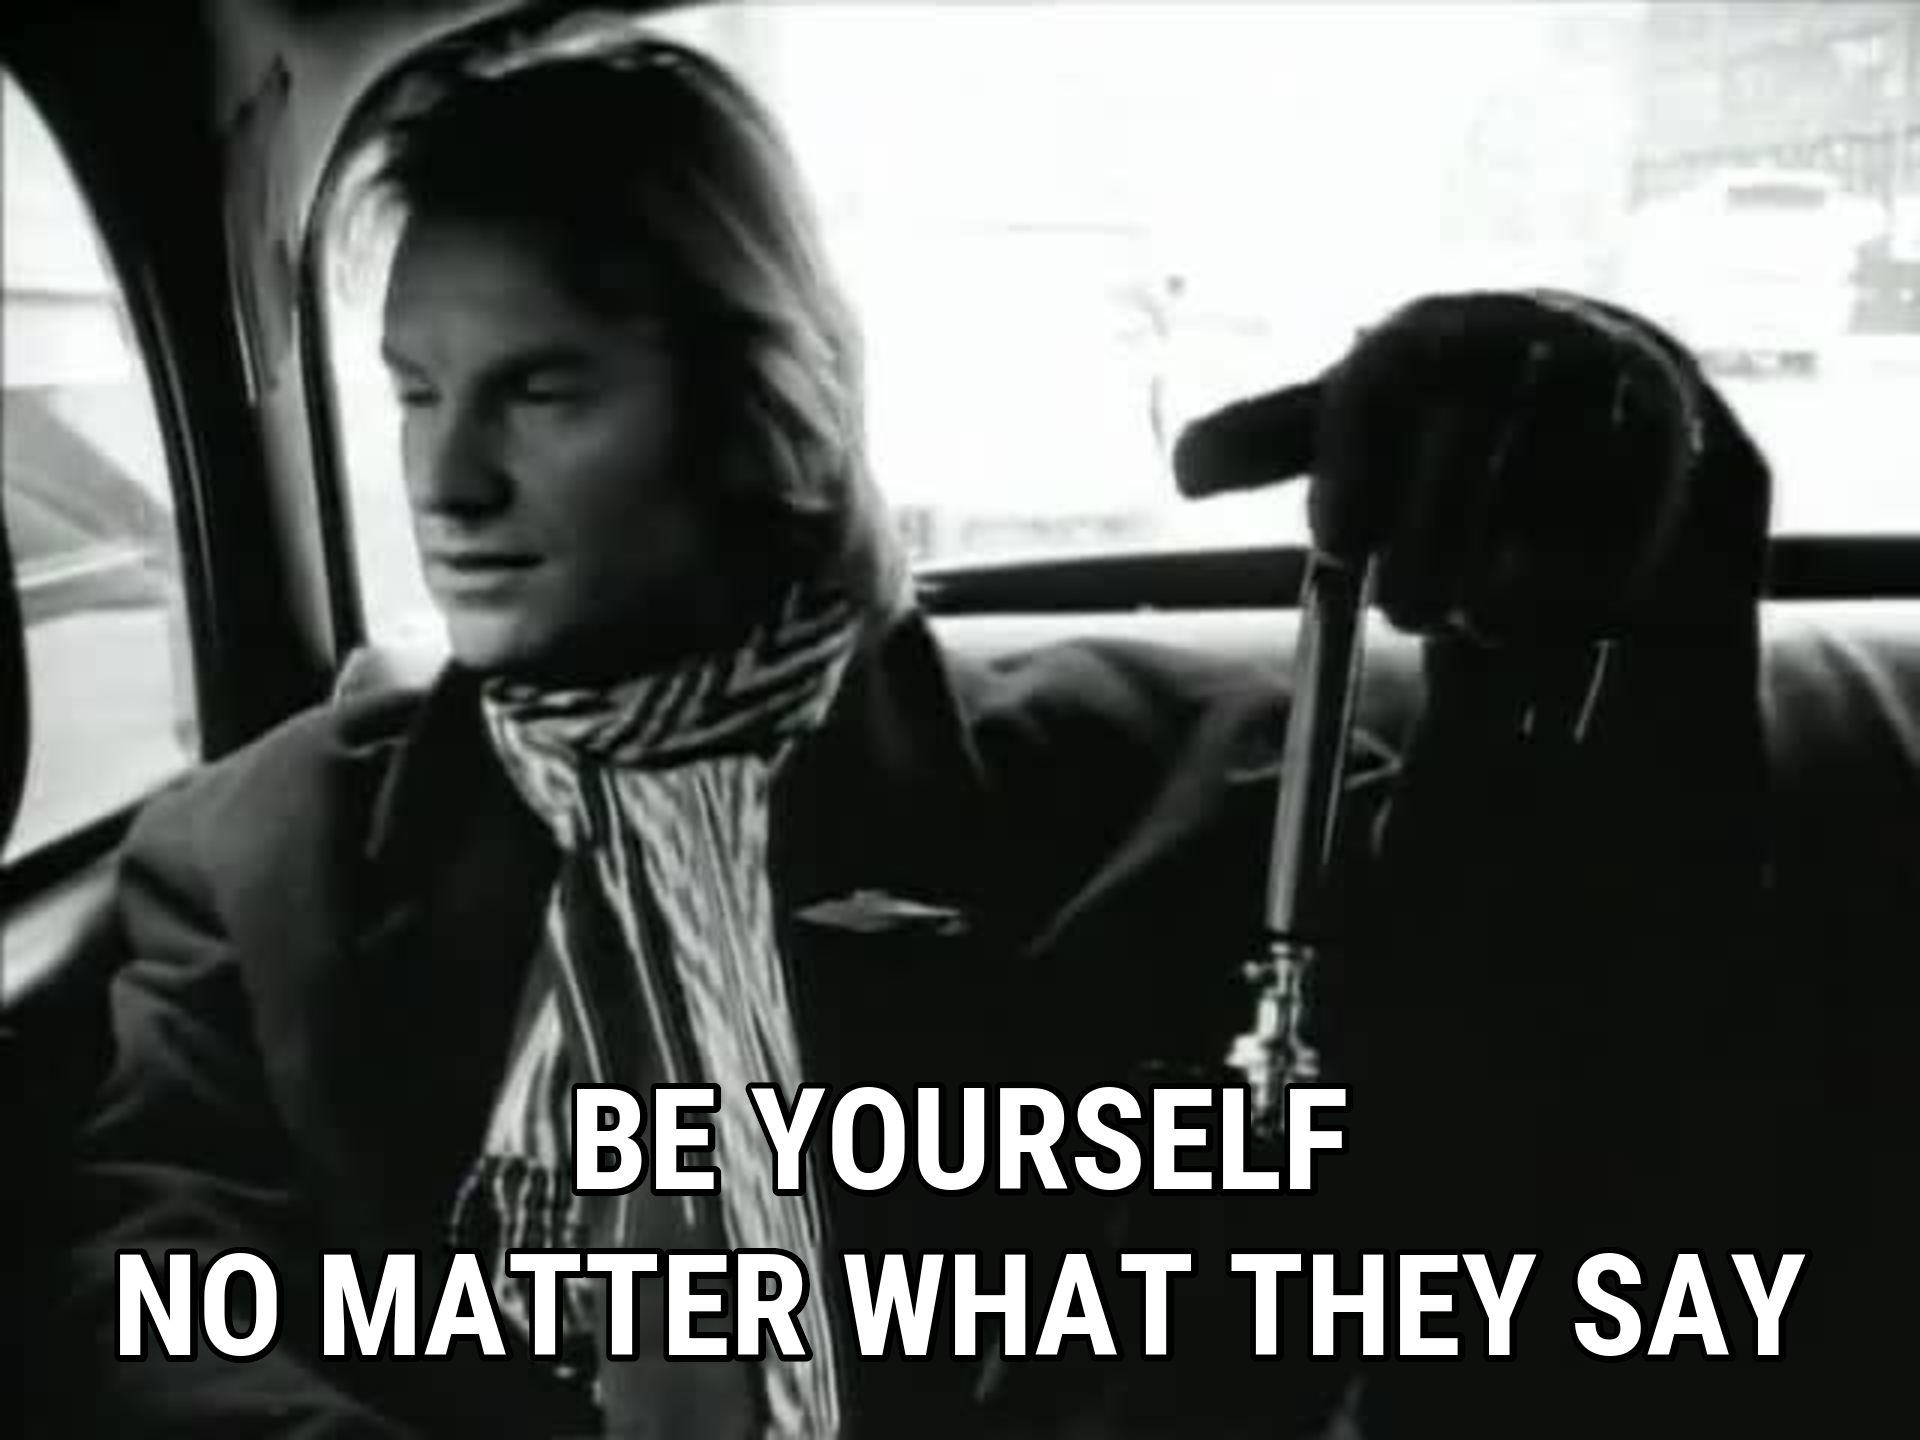 [Jeu] Association d'images - Page 20 376498-sting-be-yourself-no-matter-what-they-say